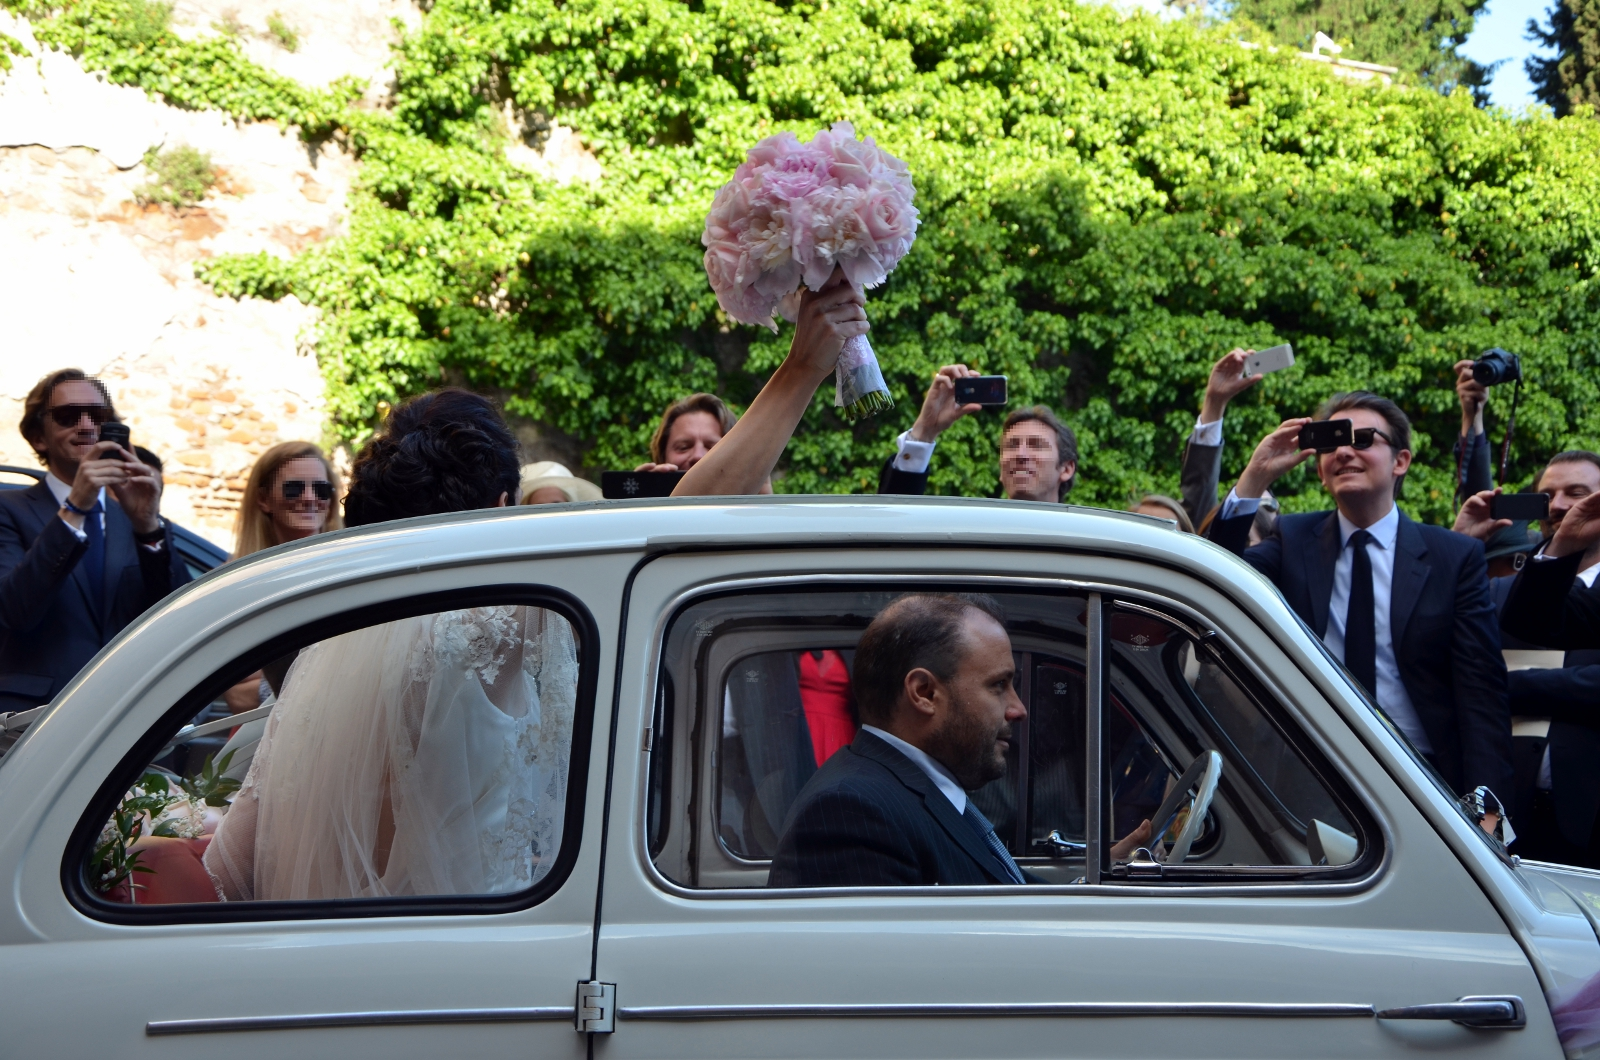 A Spring Wedding in Rome